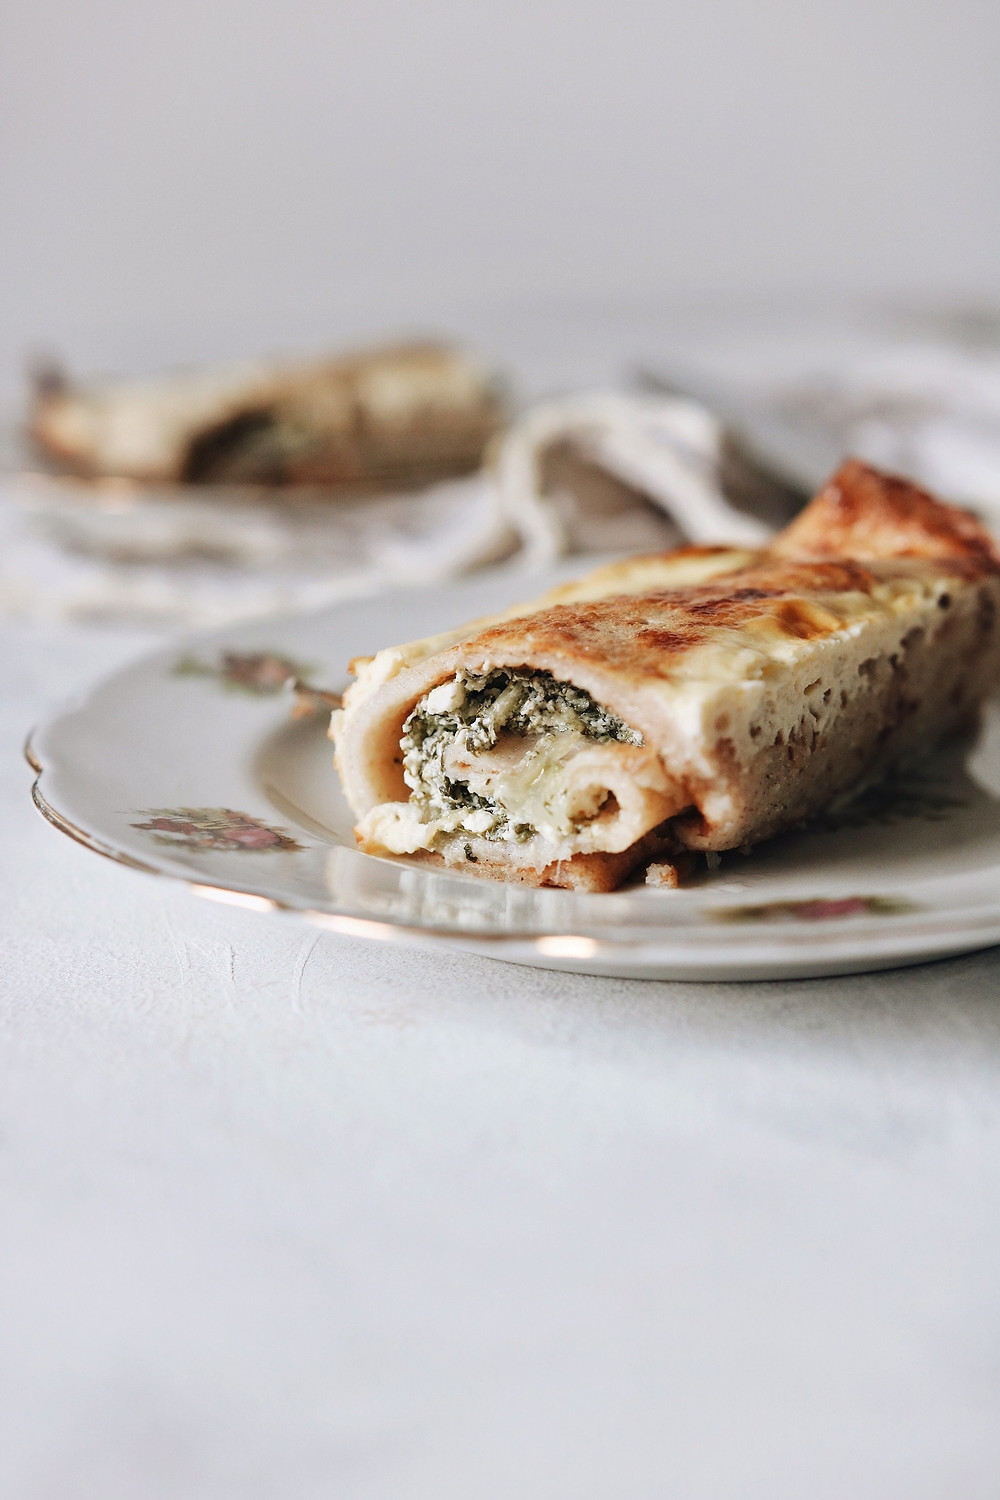 A single baked savory crepe on a plate, filled with swiss chard, cheese, and bacon (pancetta).